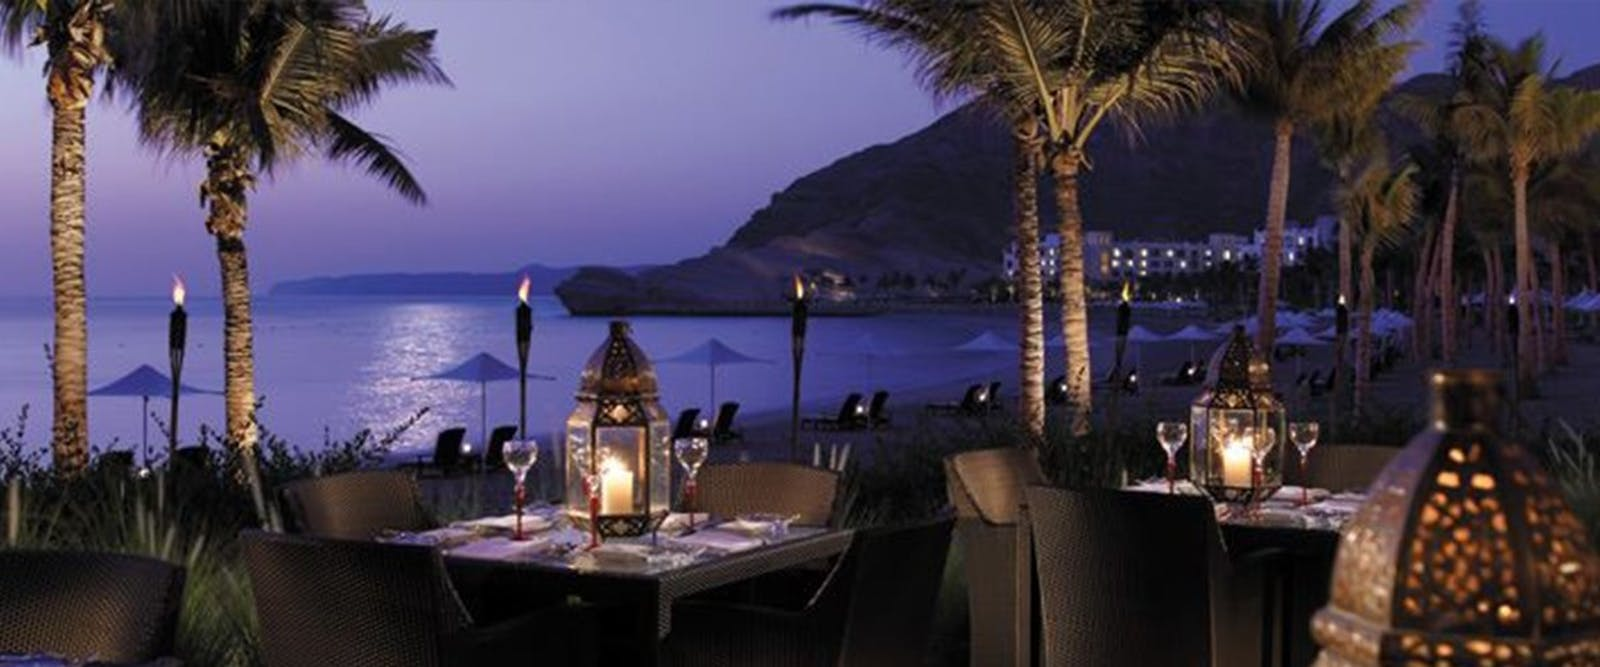 Capri court  at Shangri La Barr Al Jissah Resort & Spa, Oman - Al Waha